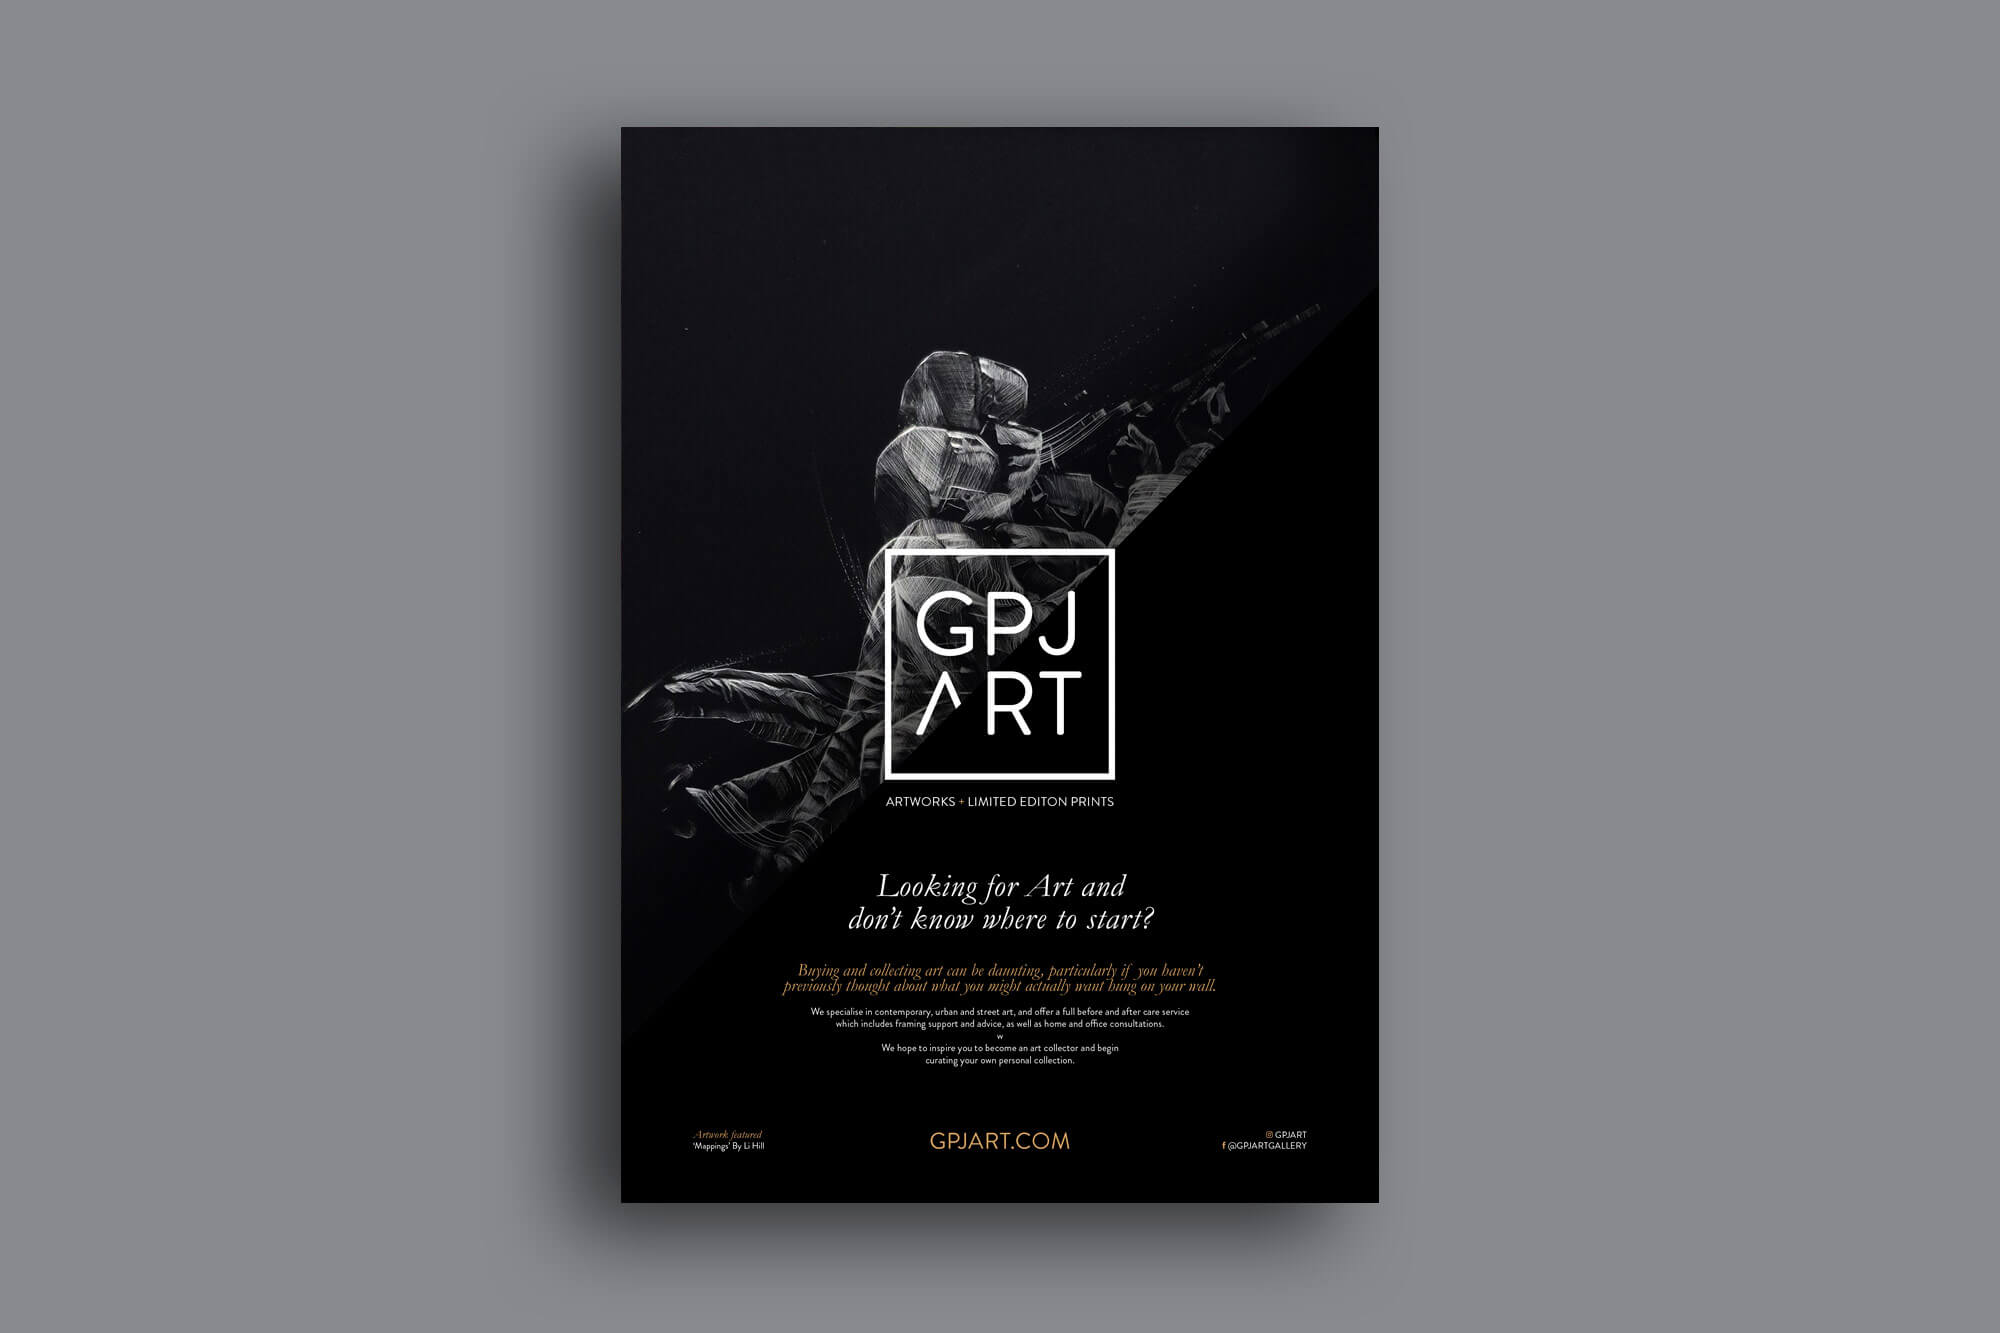 gpj-studio-design-gpj-art-cs-12